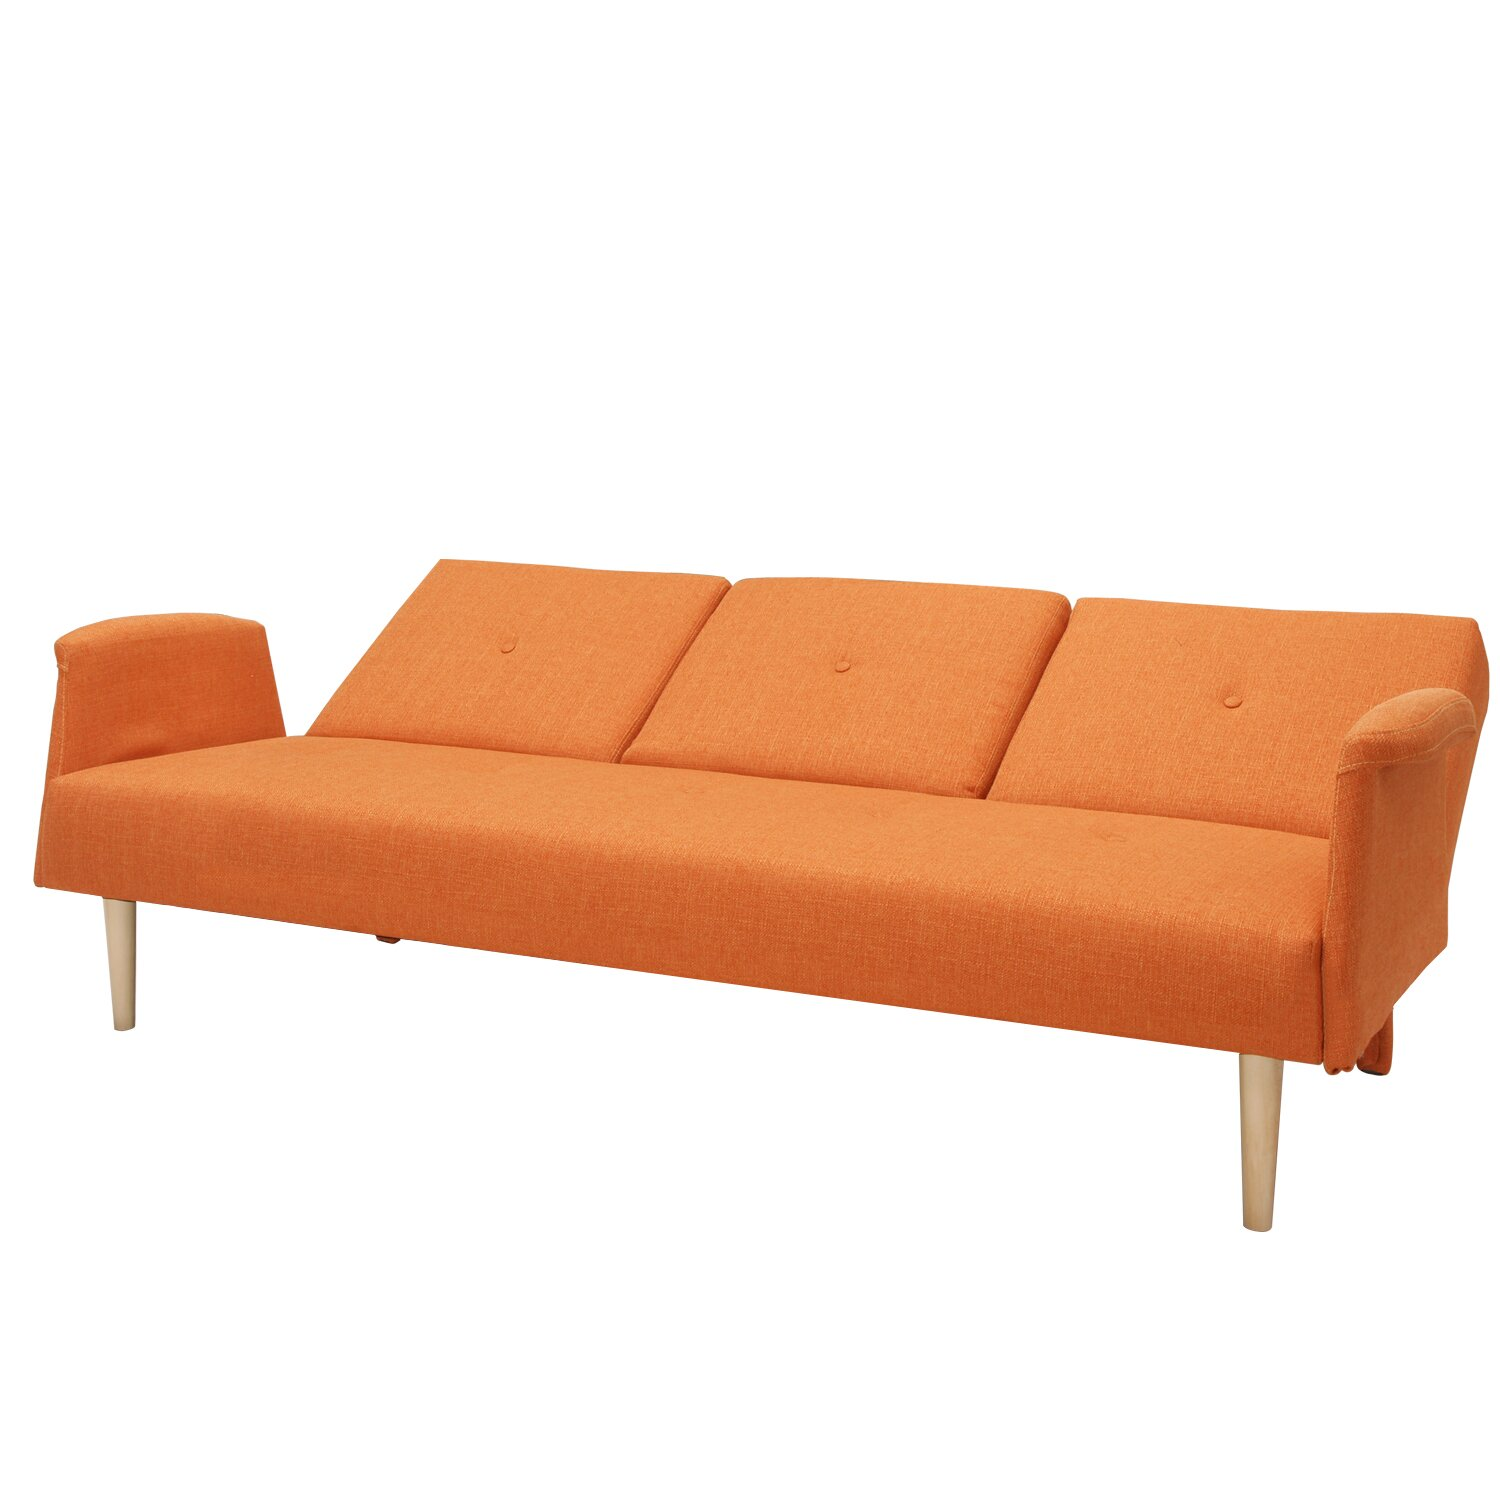 AdecoTrading Sleeper Sofa amp Reviews Wayfair : Adeco Fabric Fiber Sofa Bed Sofabed Lounge with Arm Soft Cushion Living Room Seat Wood legs e SF0003 SF0004 from www.wayfair.com size 1500 x 1500 jpeg 205kB